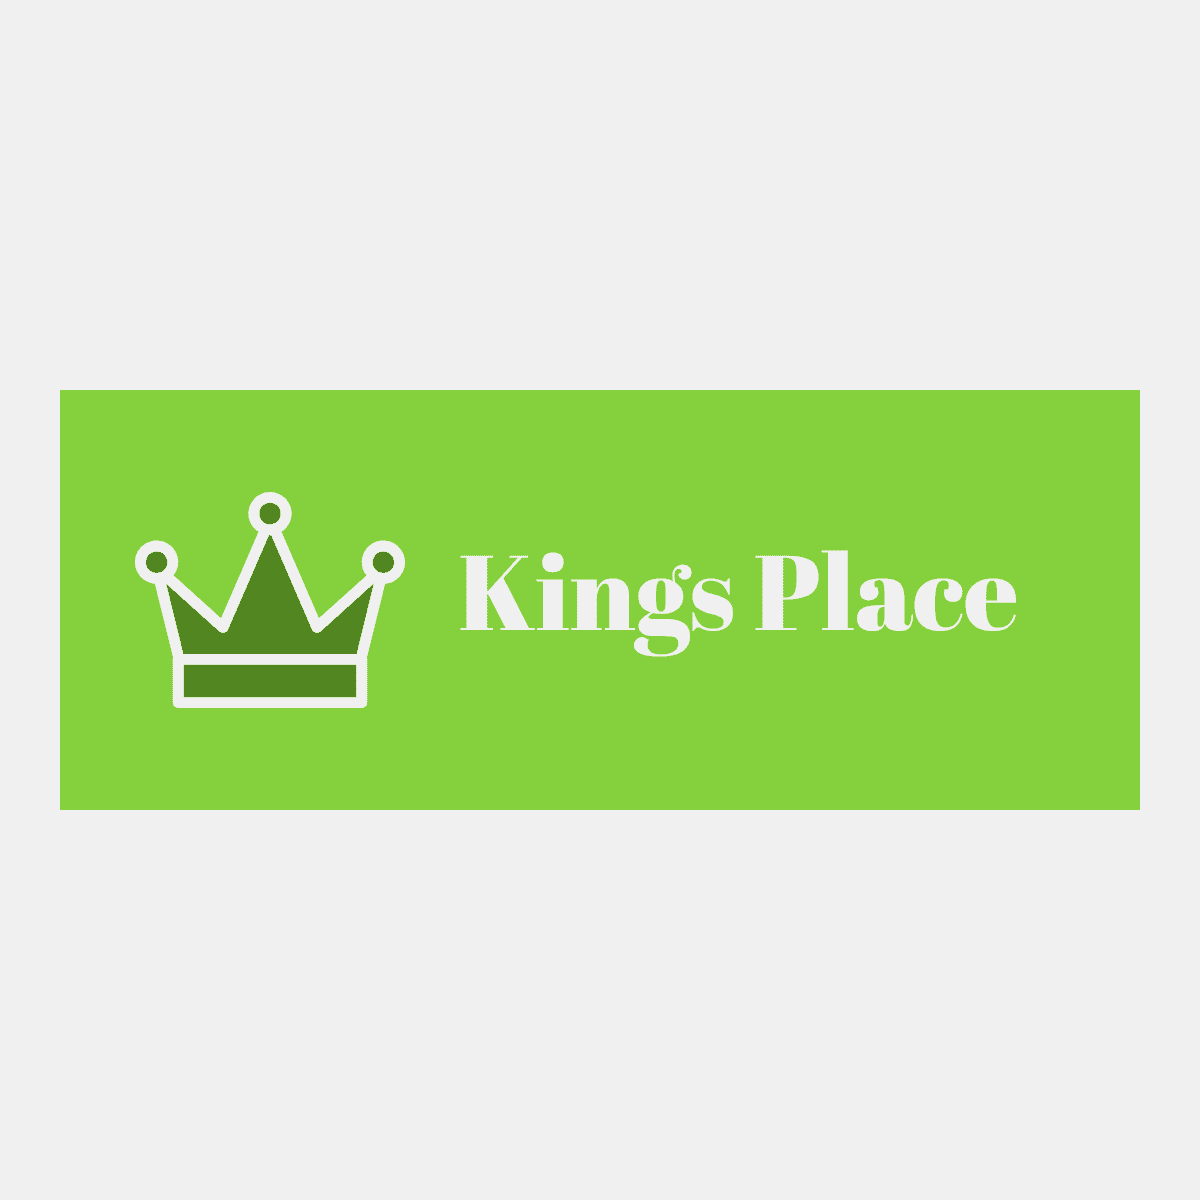 Kings-place